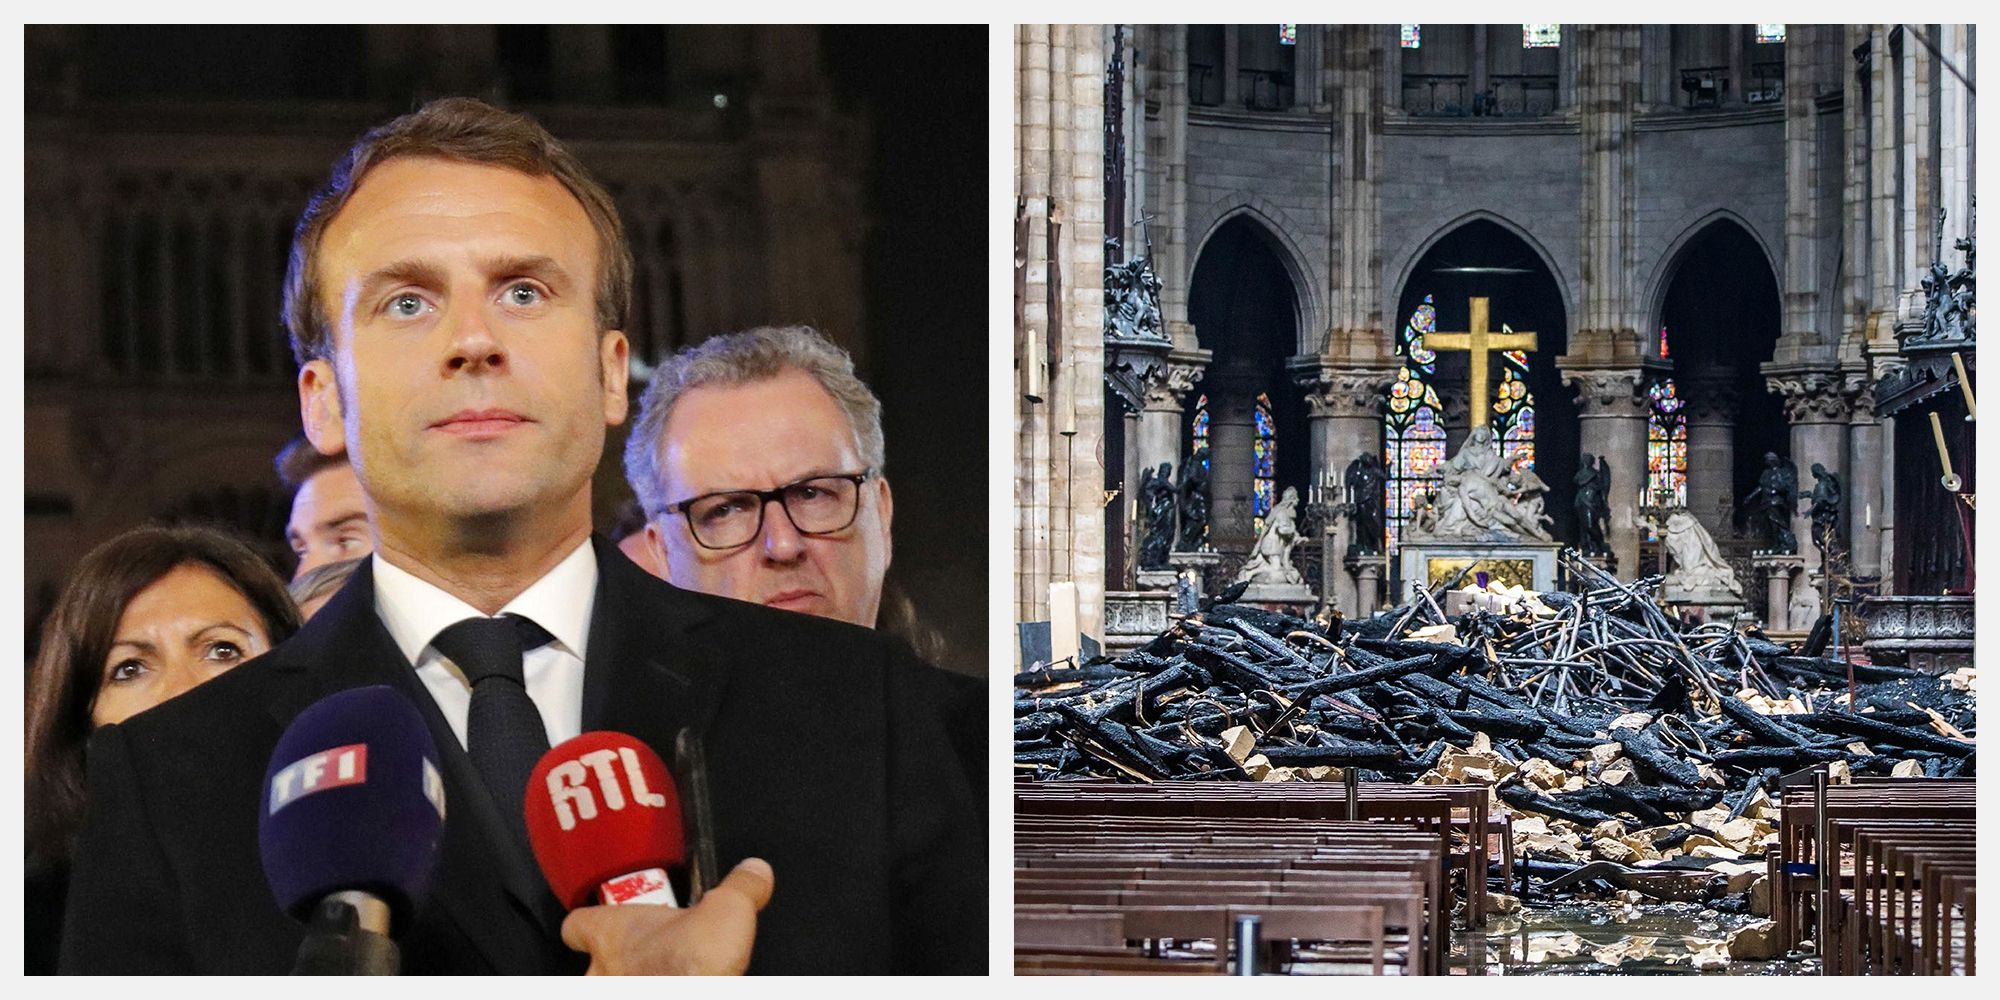 President Macron Wants to See Notre-Dame Cathedral Restored in Five Years